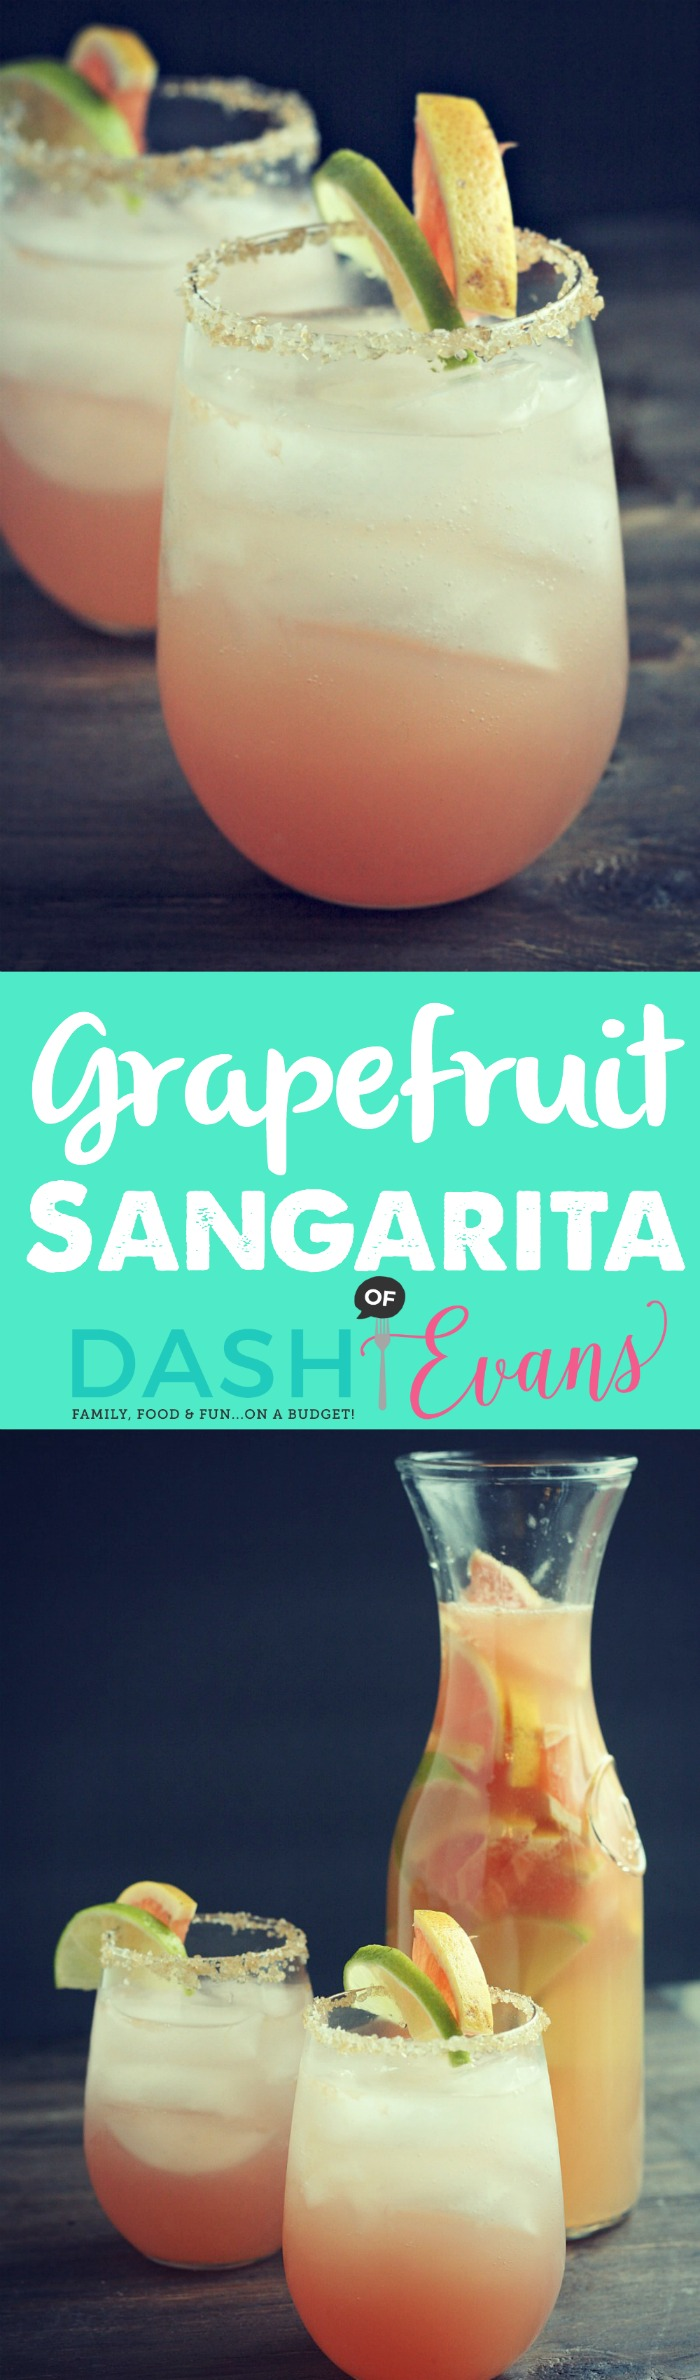 [Grapefruit Sangarita] Perfect pitcher cocktail for your next BBQ or brunch! Uses refreshing Indian River Select grapefruit juice, sweet white wine, tequila and more! via @DashofEvans